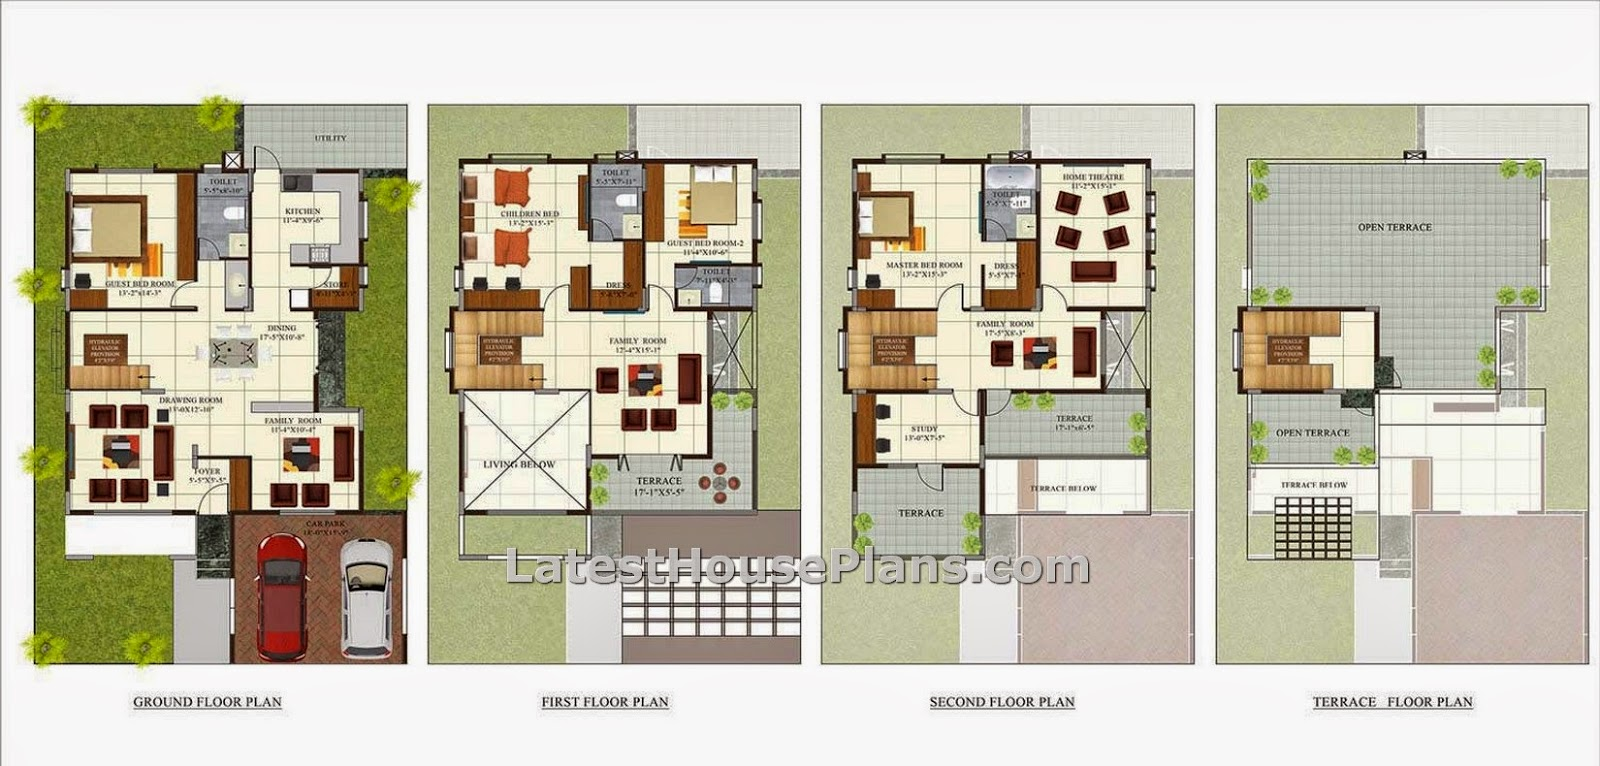 BHK Independent villa house plan in 4200 sq ft area | Latest House ...